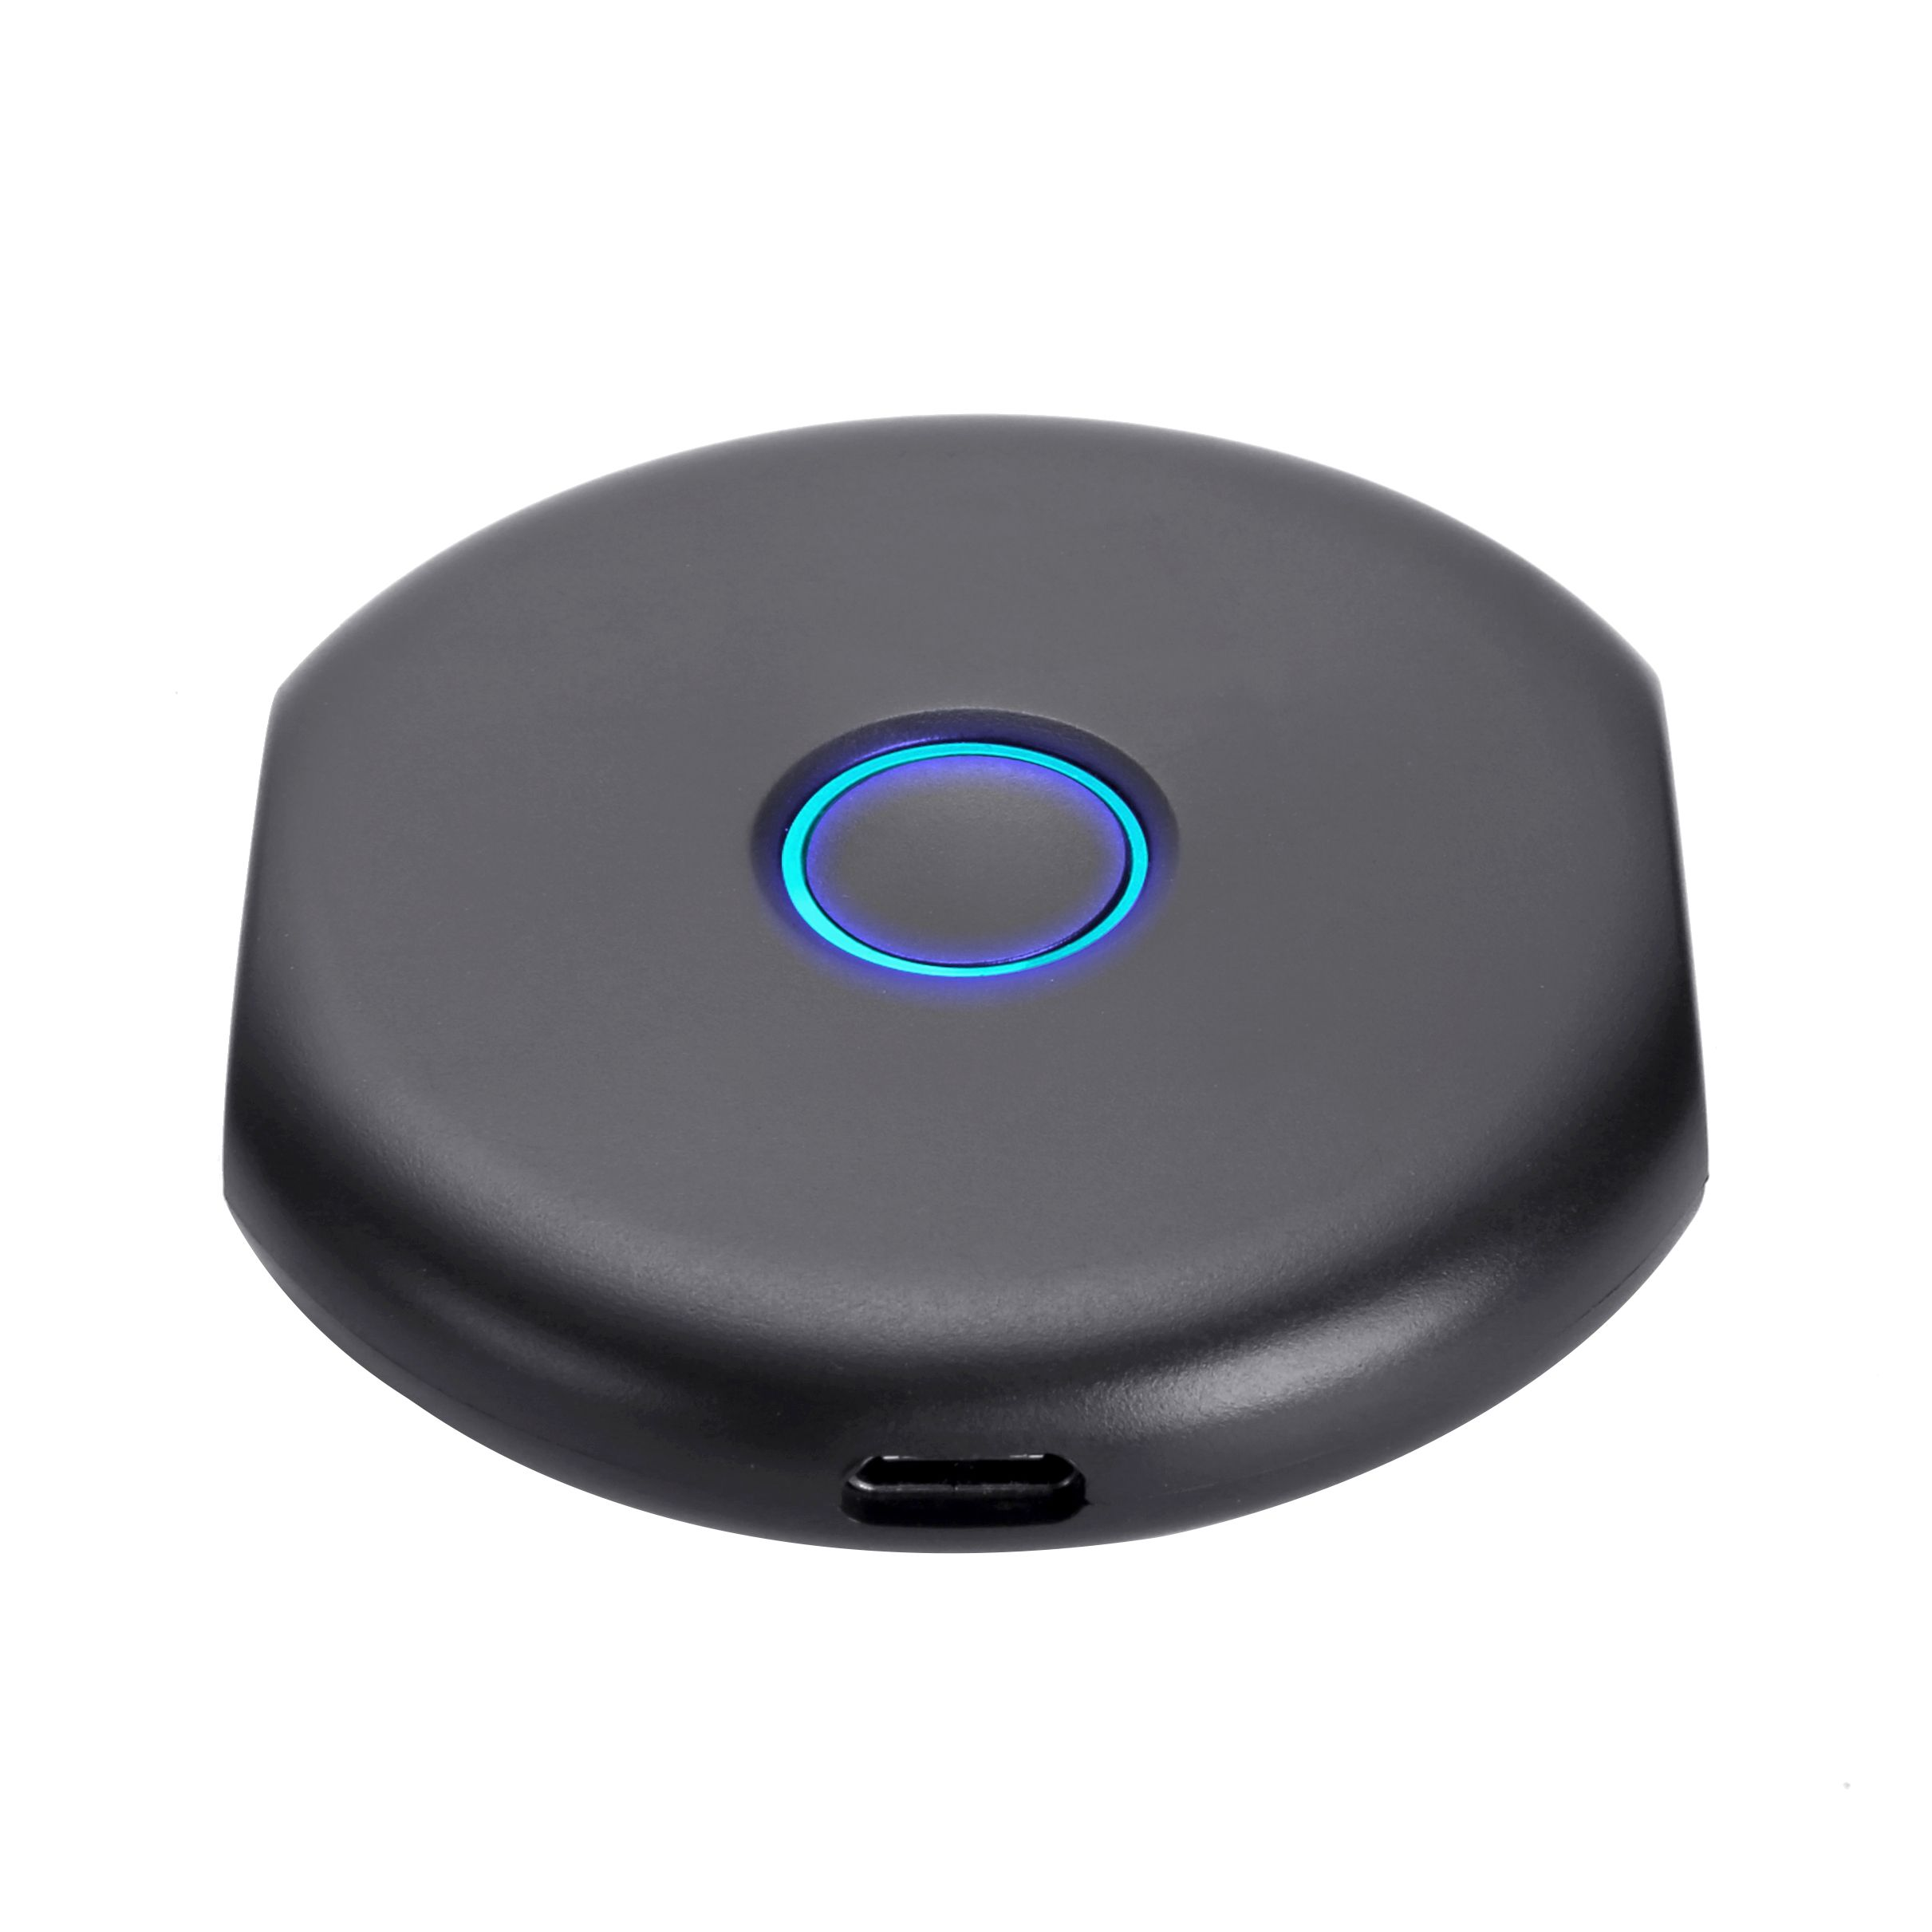 Hỗ Trợ WiFi WeCast/DLNA/Miracast/Airplay EC-C39 4K 1080P TV Dongle Cho Android/ Mac/IOS/Windows